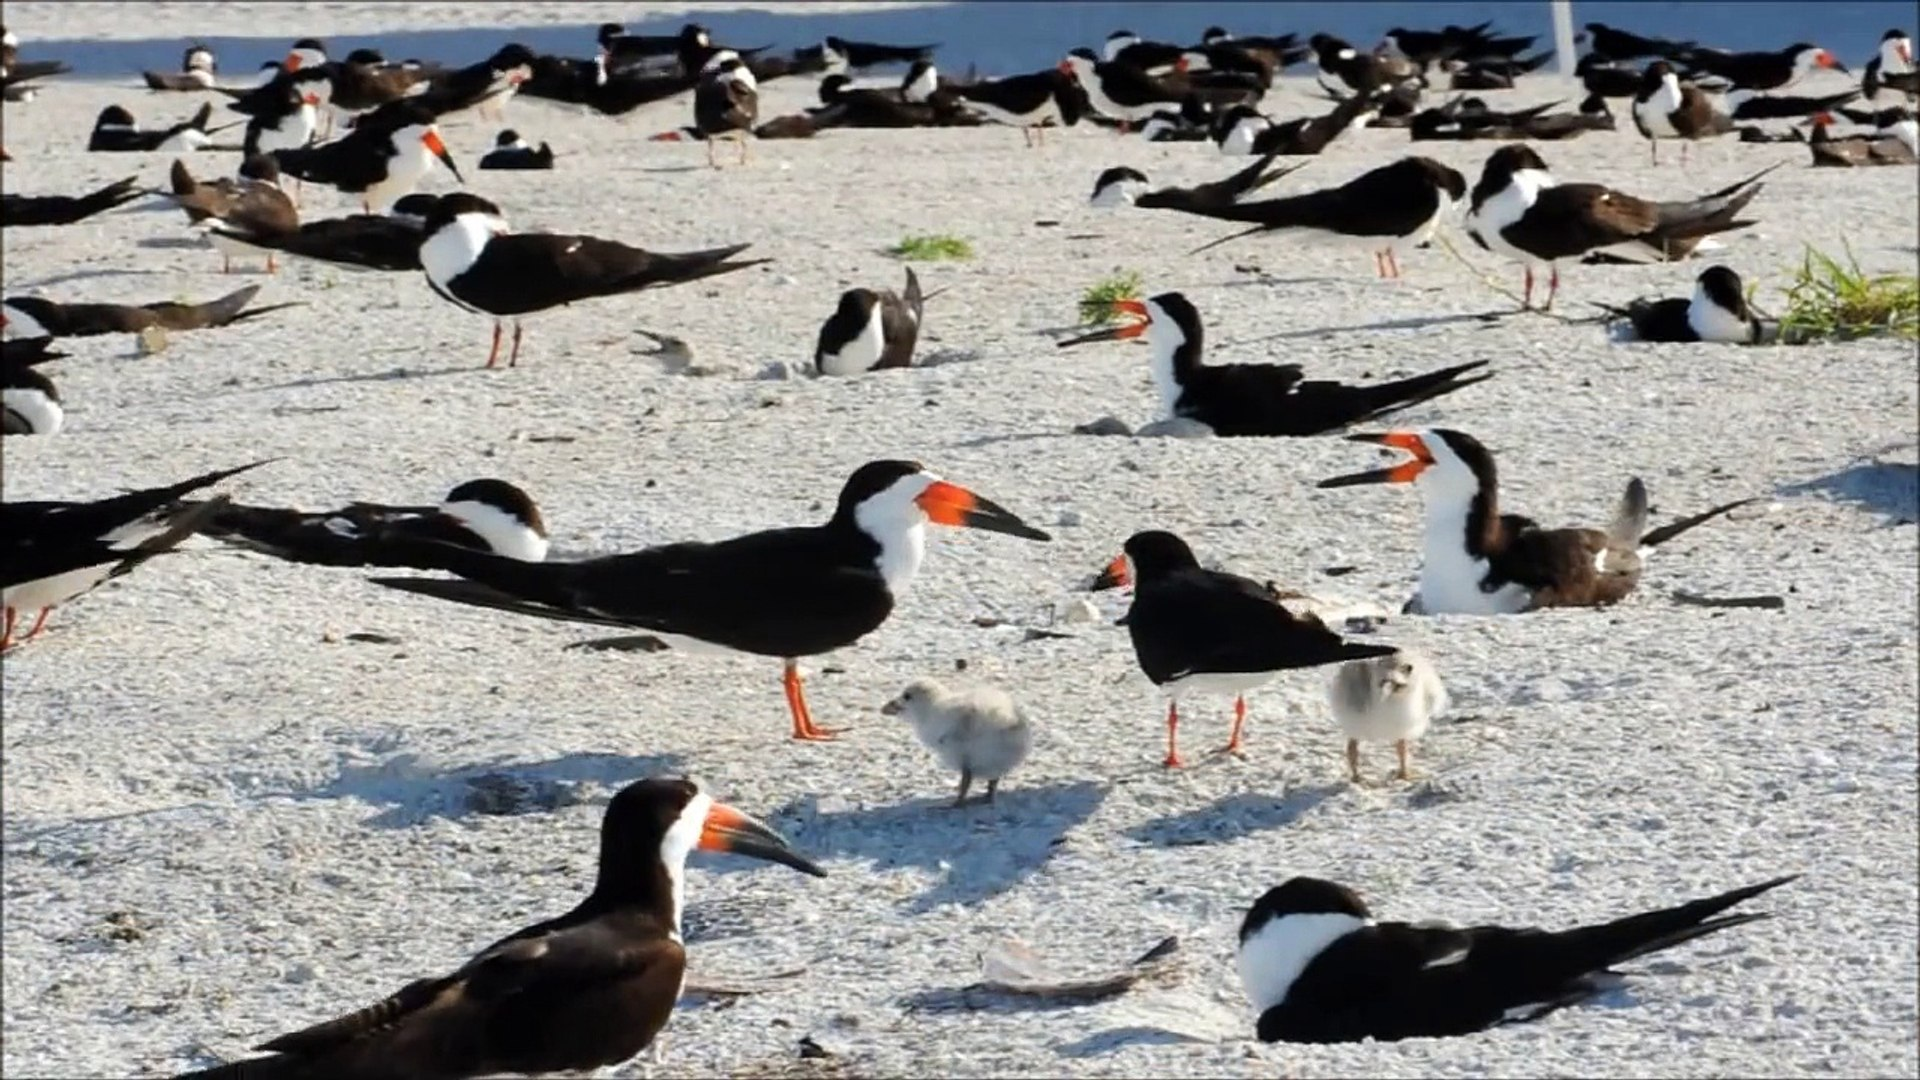 Black Skimmer Colony on the Gulf in Florida by Karen King